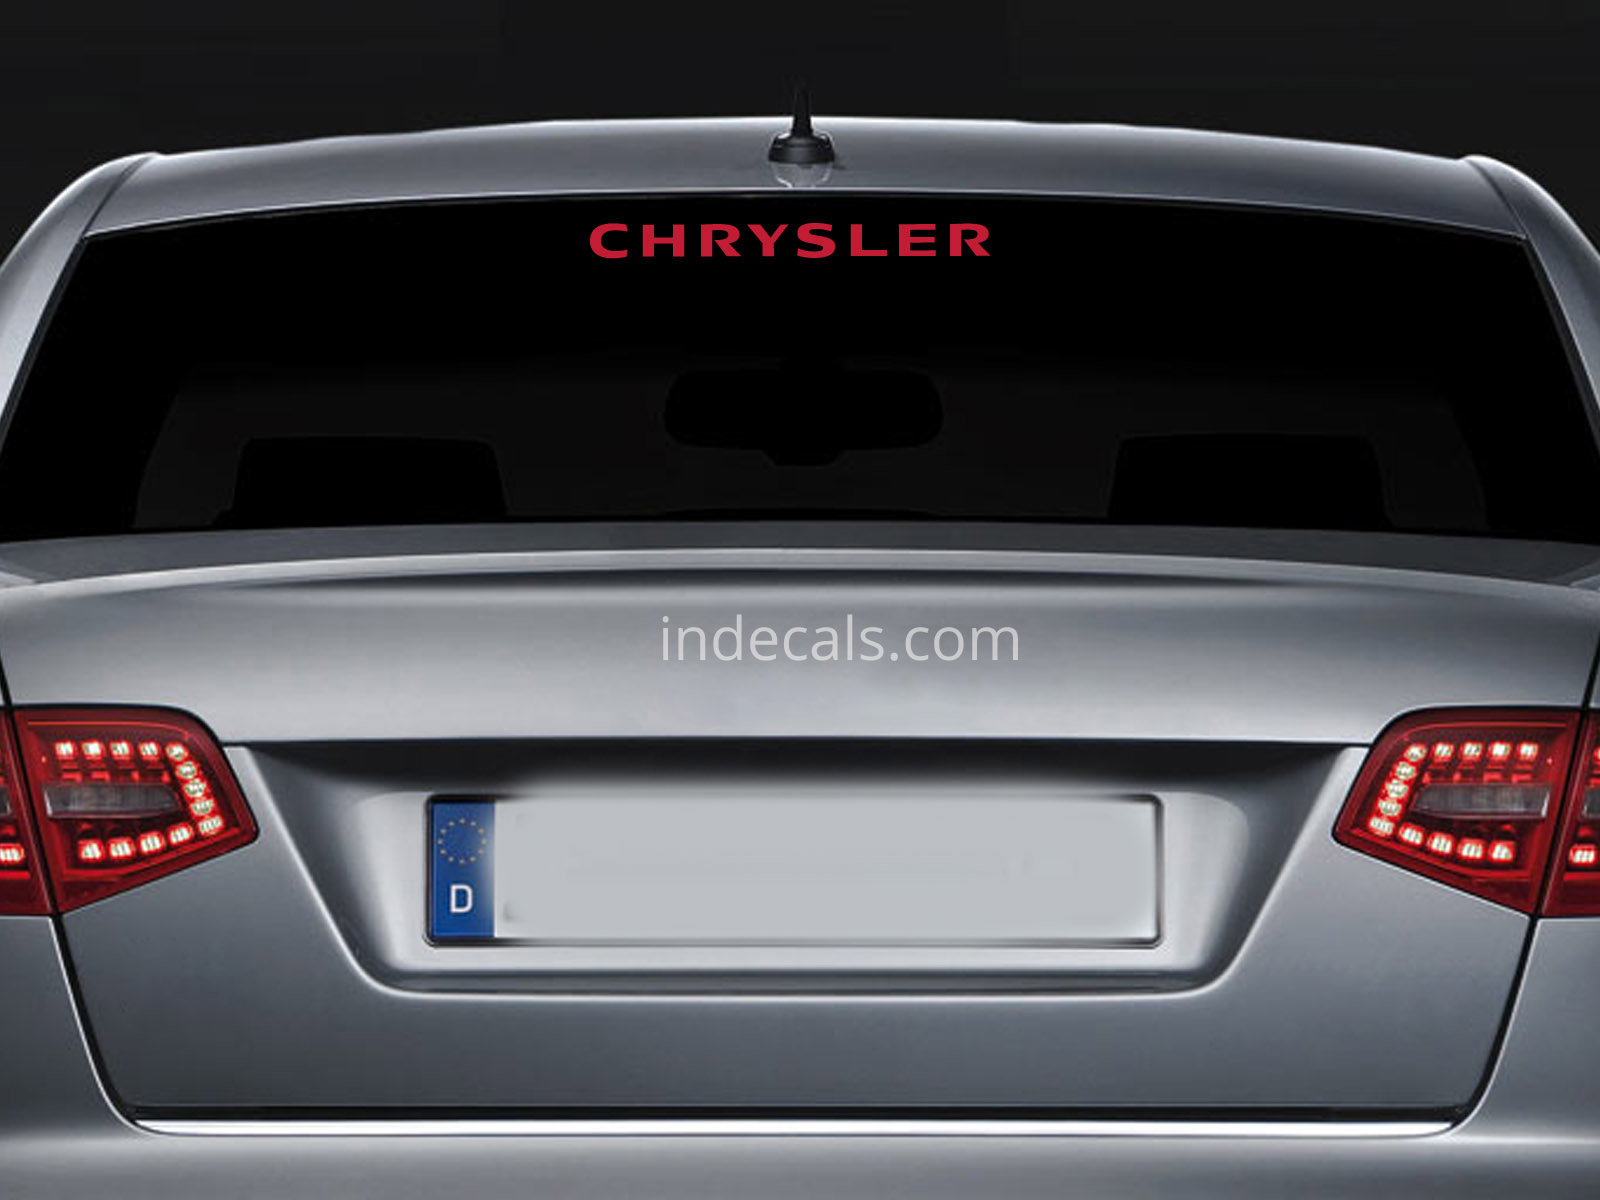 1 x Chrysler Sticker for Windshield or Back Window - Red